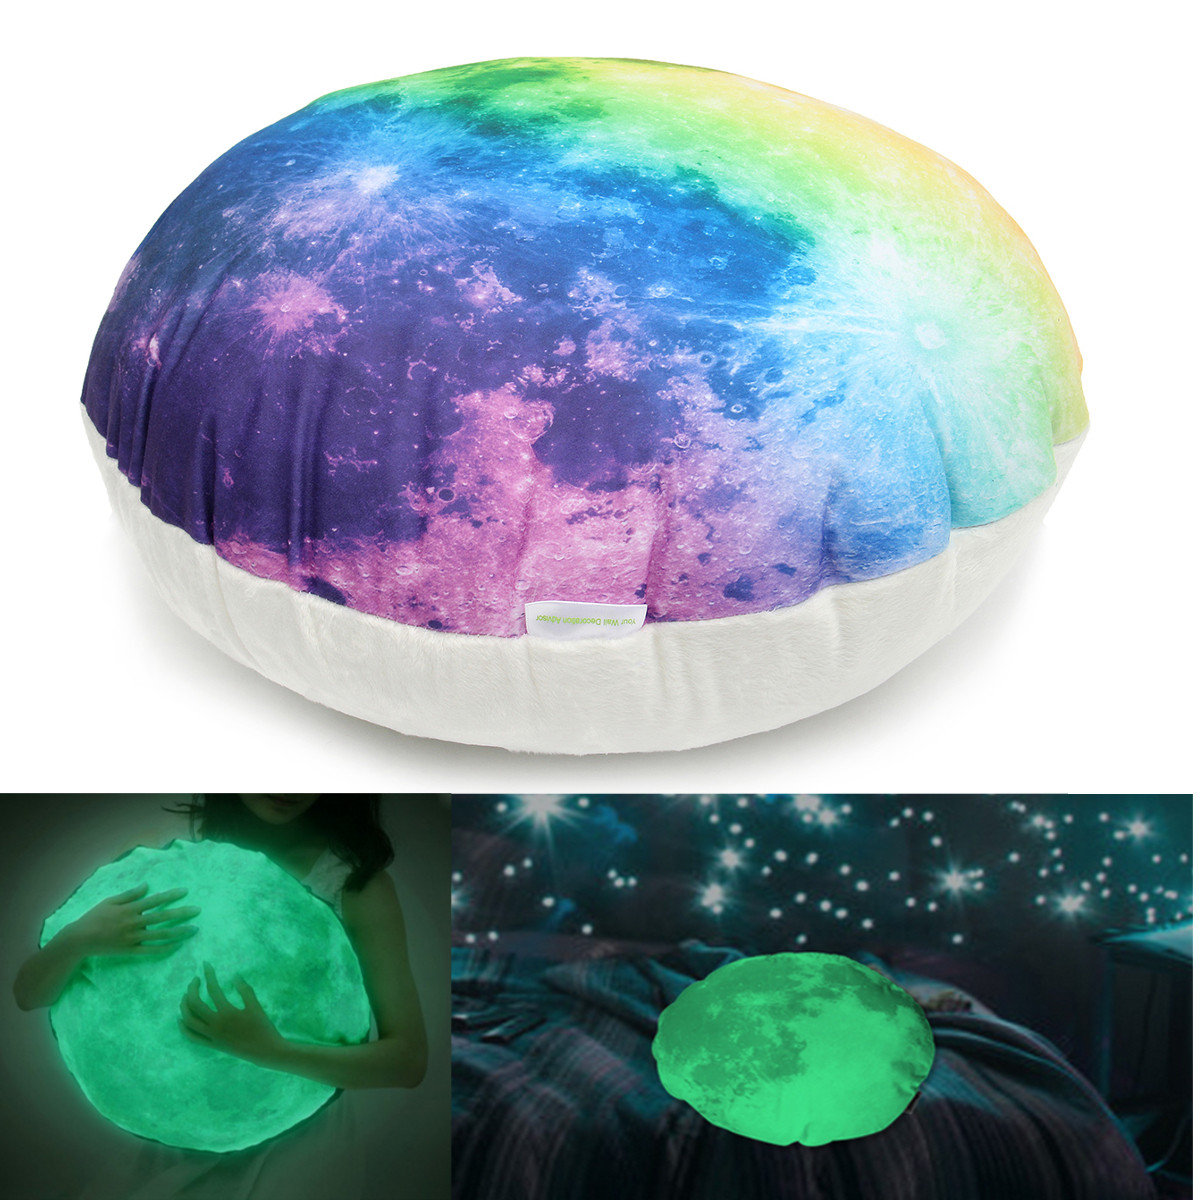 M.way Luminous Glow in the Dark Moon Throw Pillow Cushion Backrest Bed Seat Support Sofa Bed Home Decor Gifts Living Room